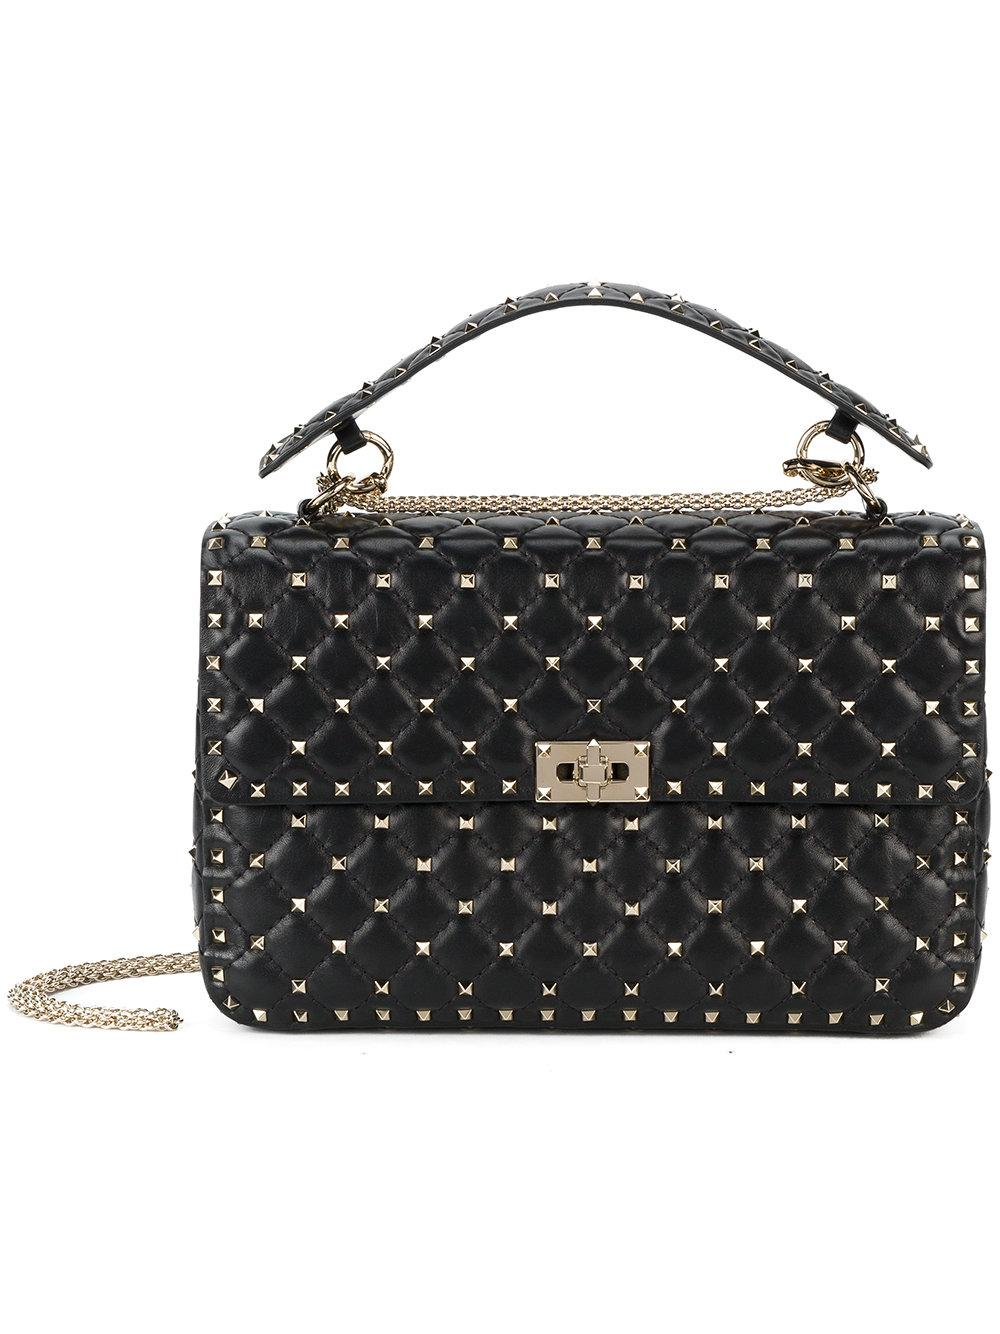 RockStud Spike Large Shoulder Bag